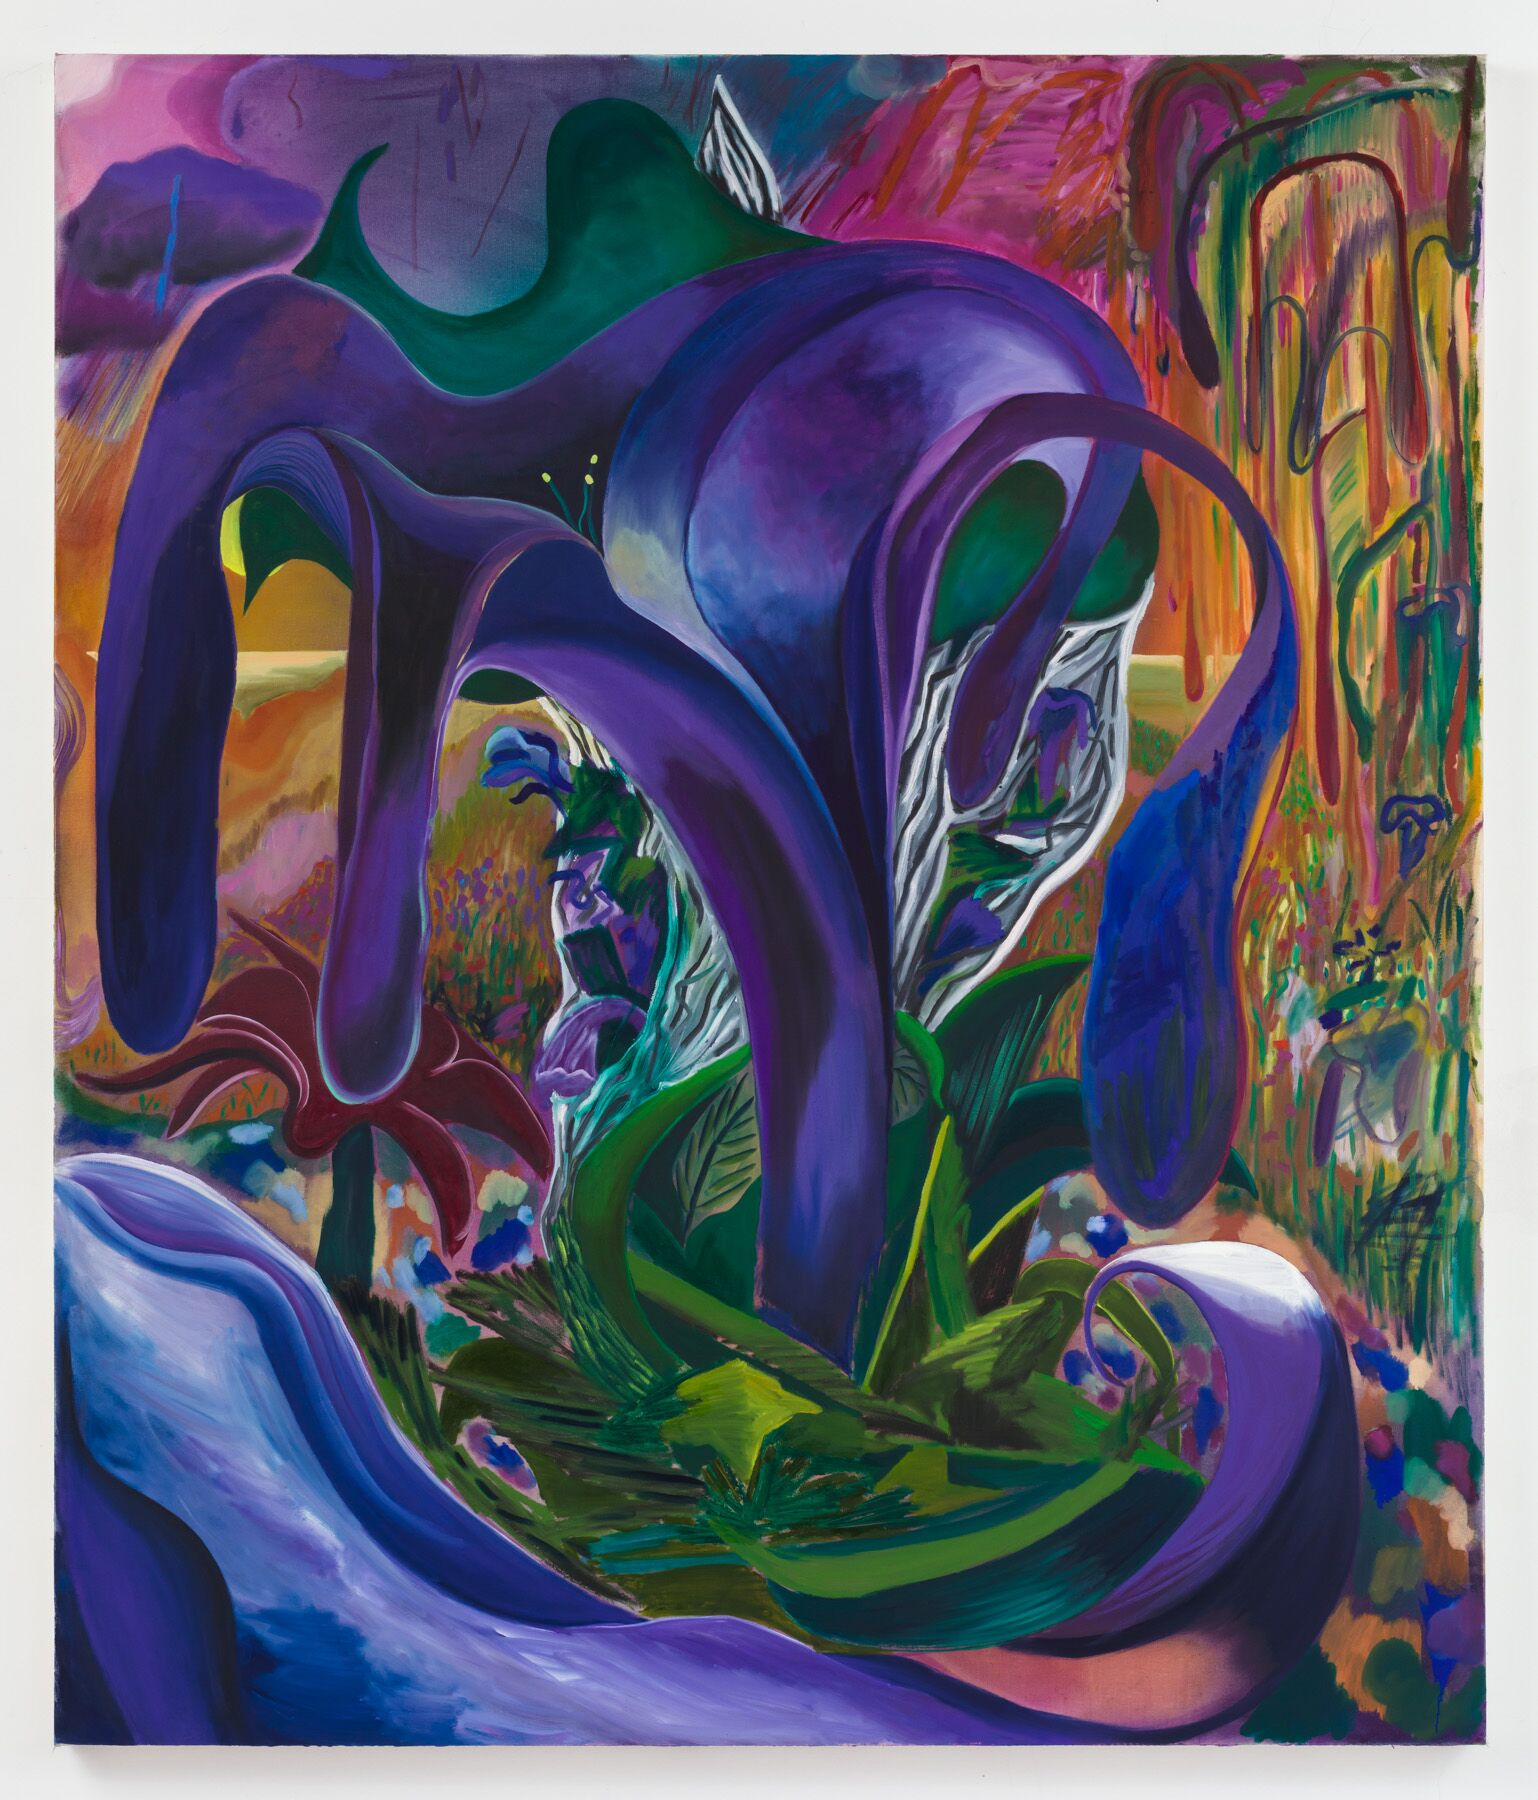 Shara Hughes,  Naked Lady , 2019, oil and dye on canvas, 78 x 66 inches (198.1 x 167.6 cm). Courtesy of the artist and Rachel Uffner Gallery.